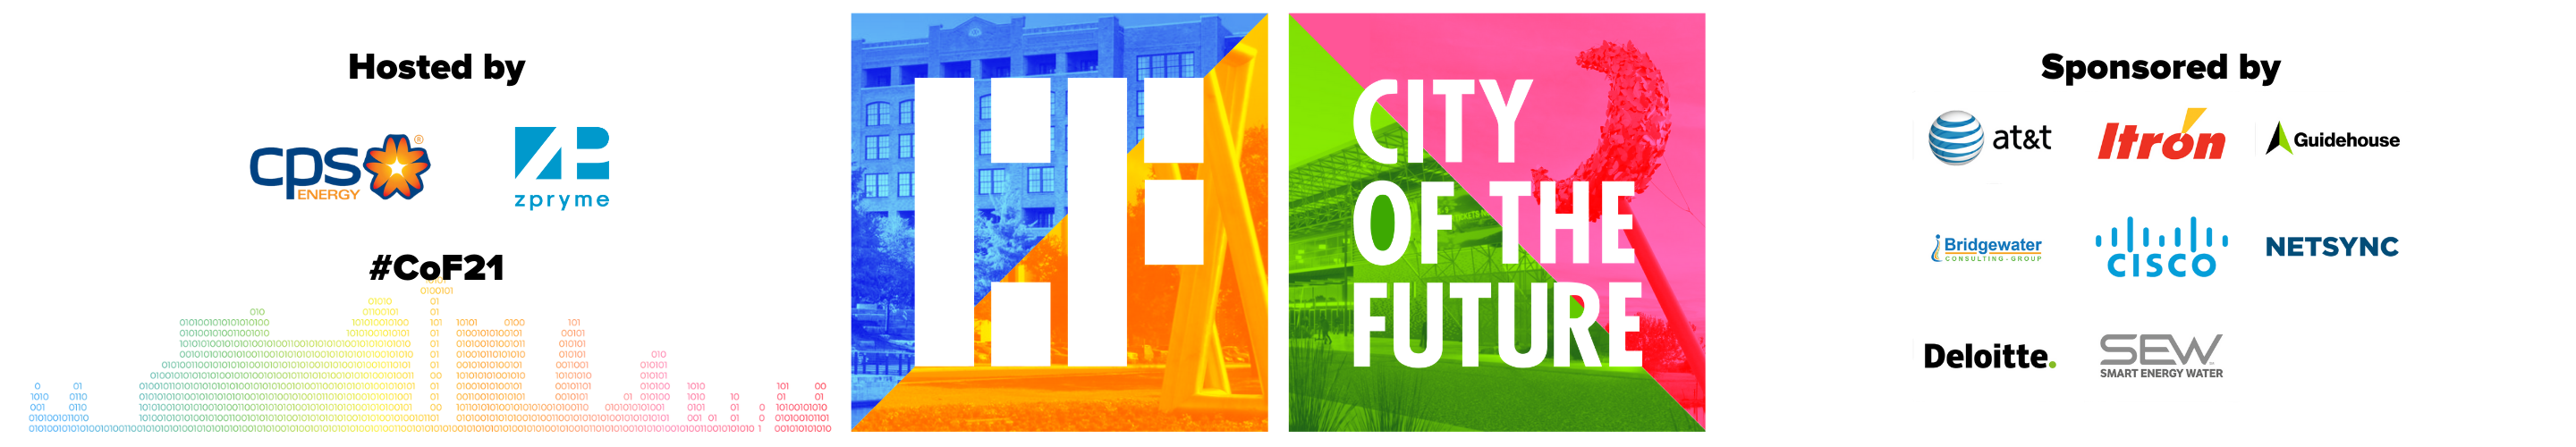 City of the Future - July Session